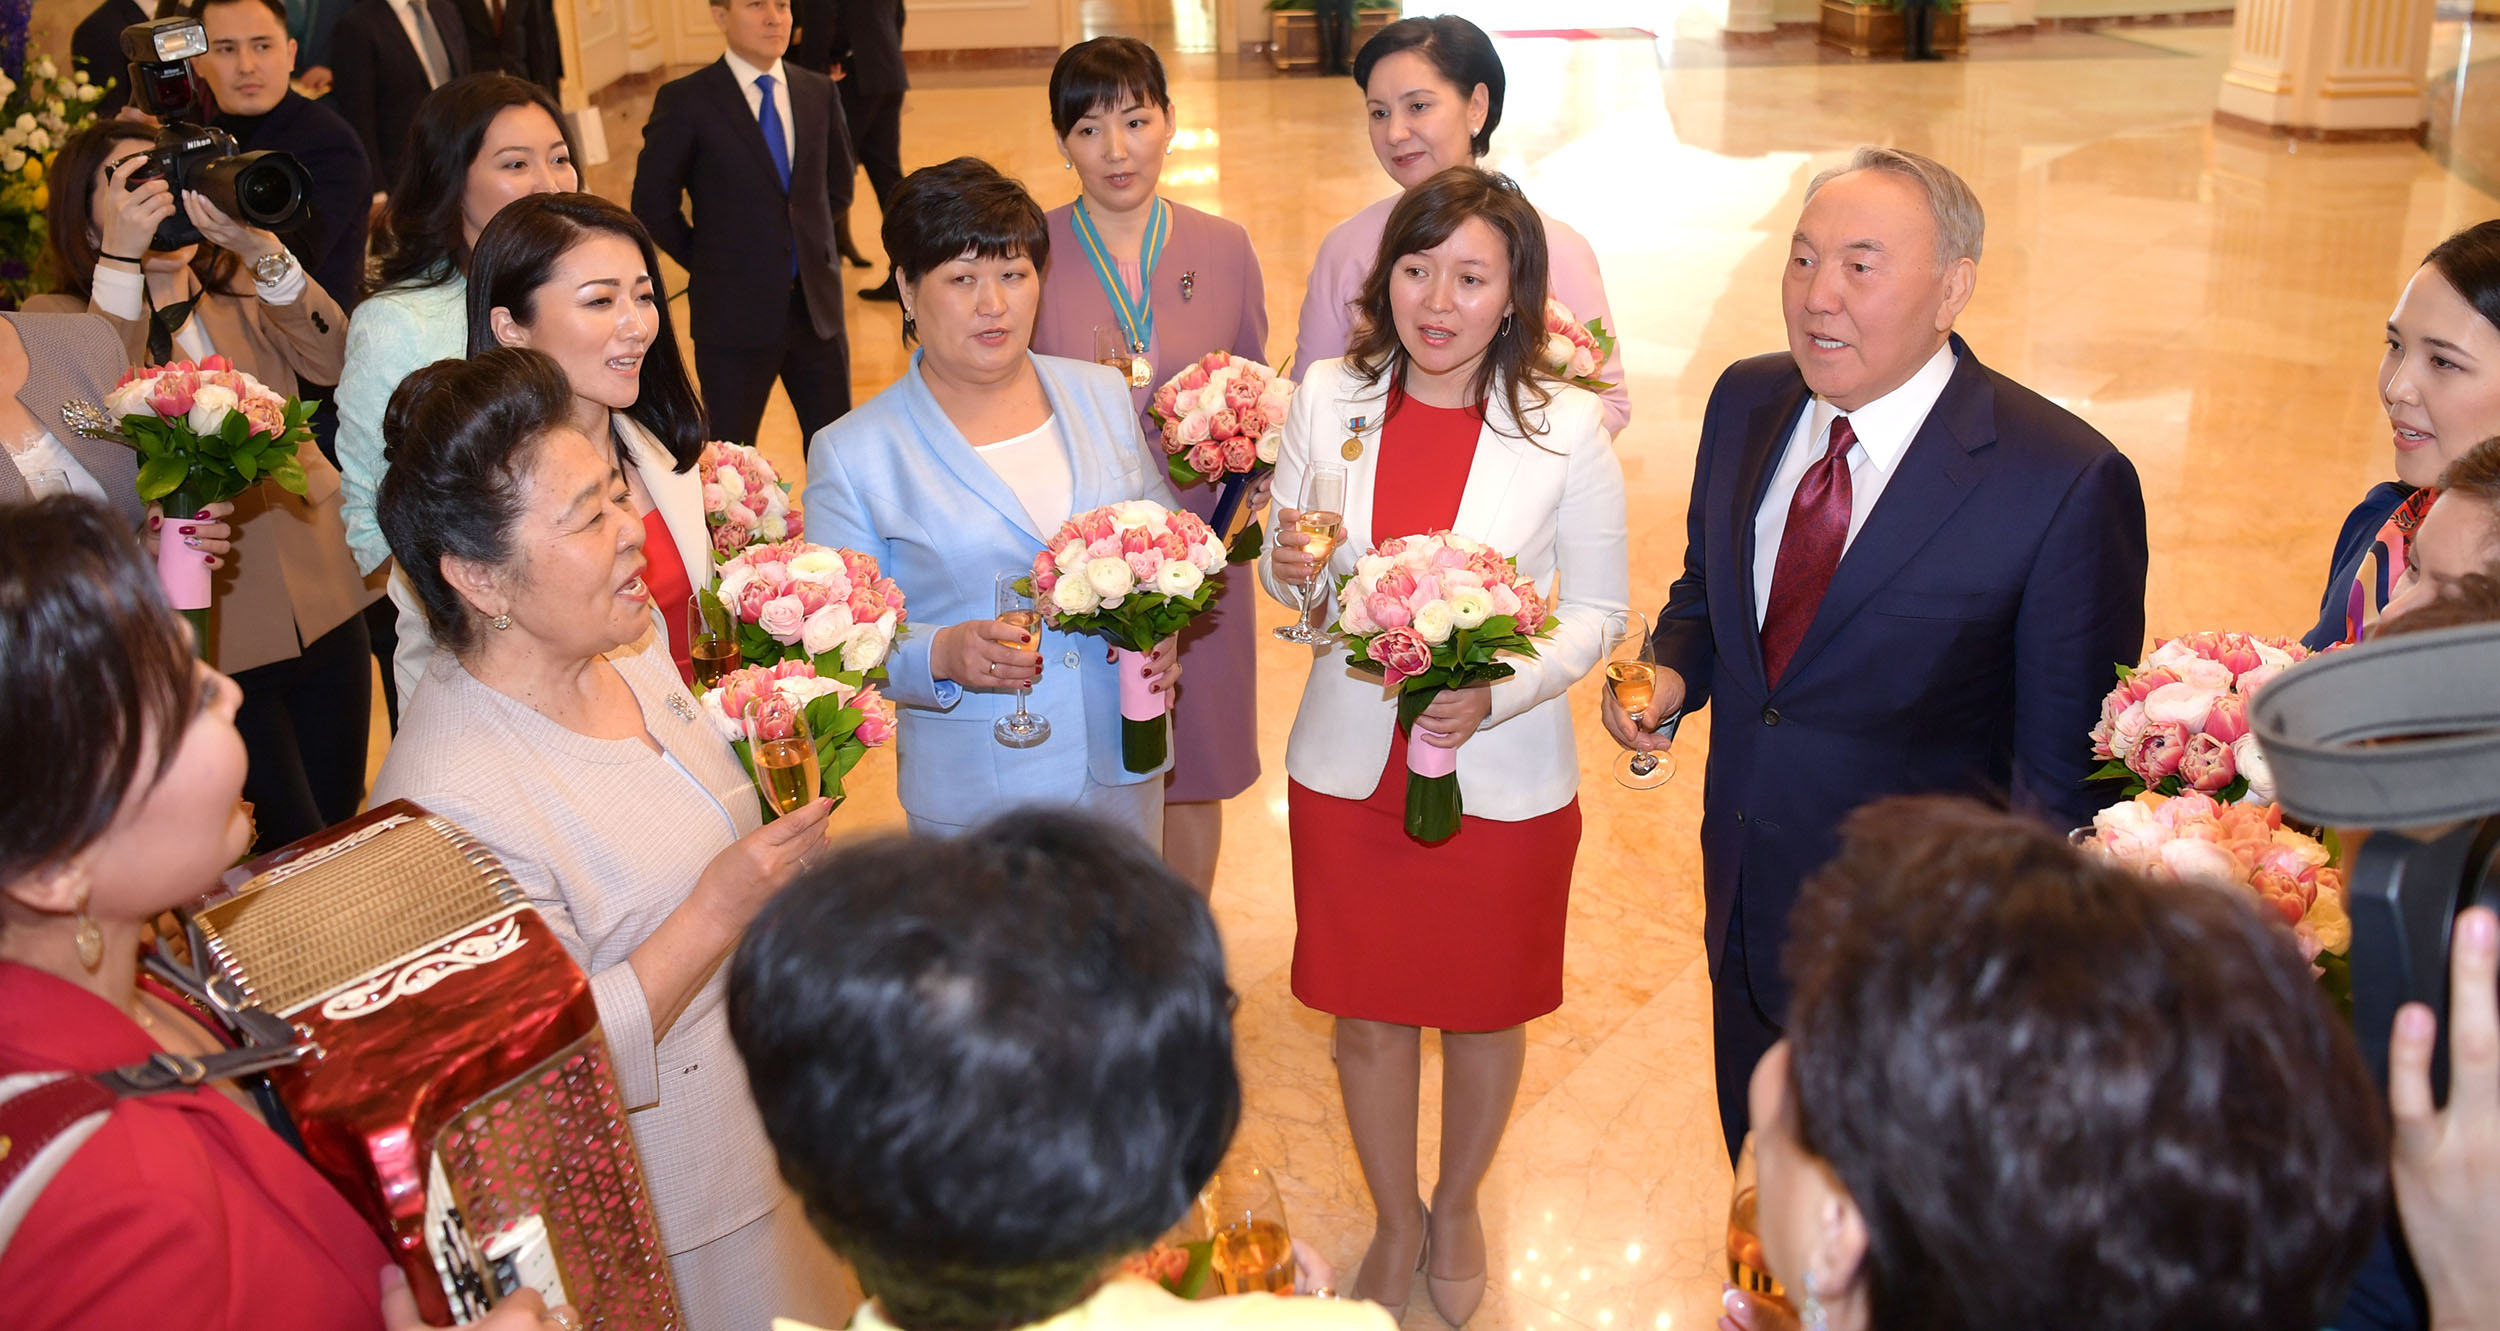 Congratulation of President Nazarbayev on the International Women's Day